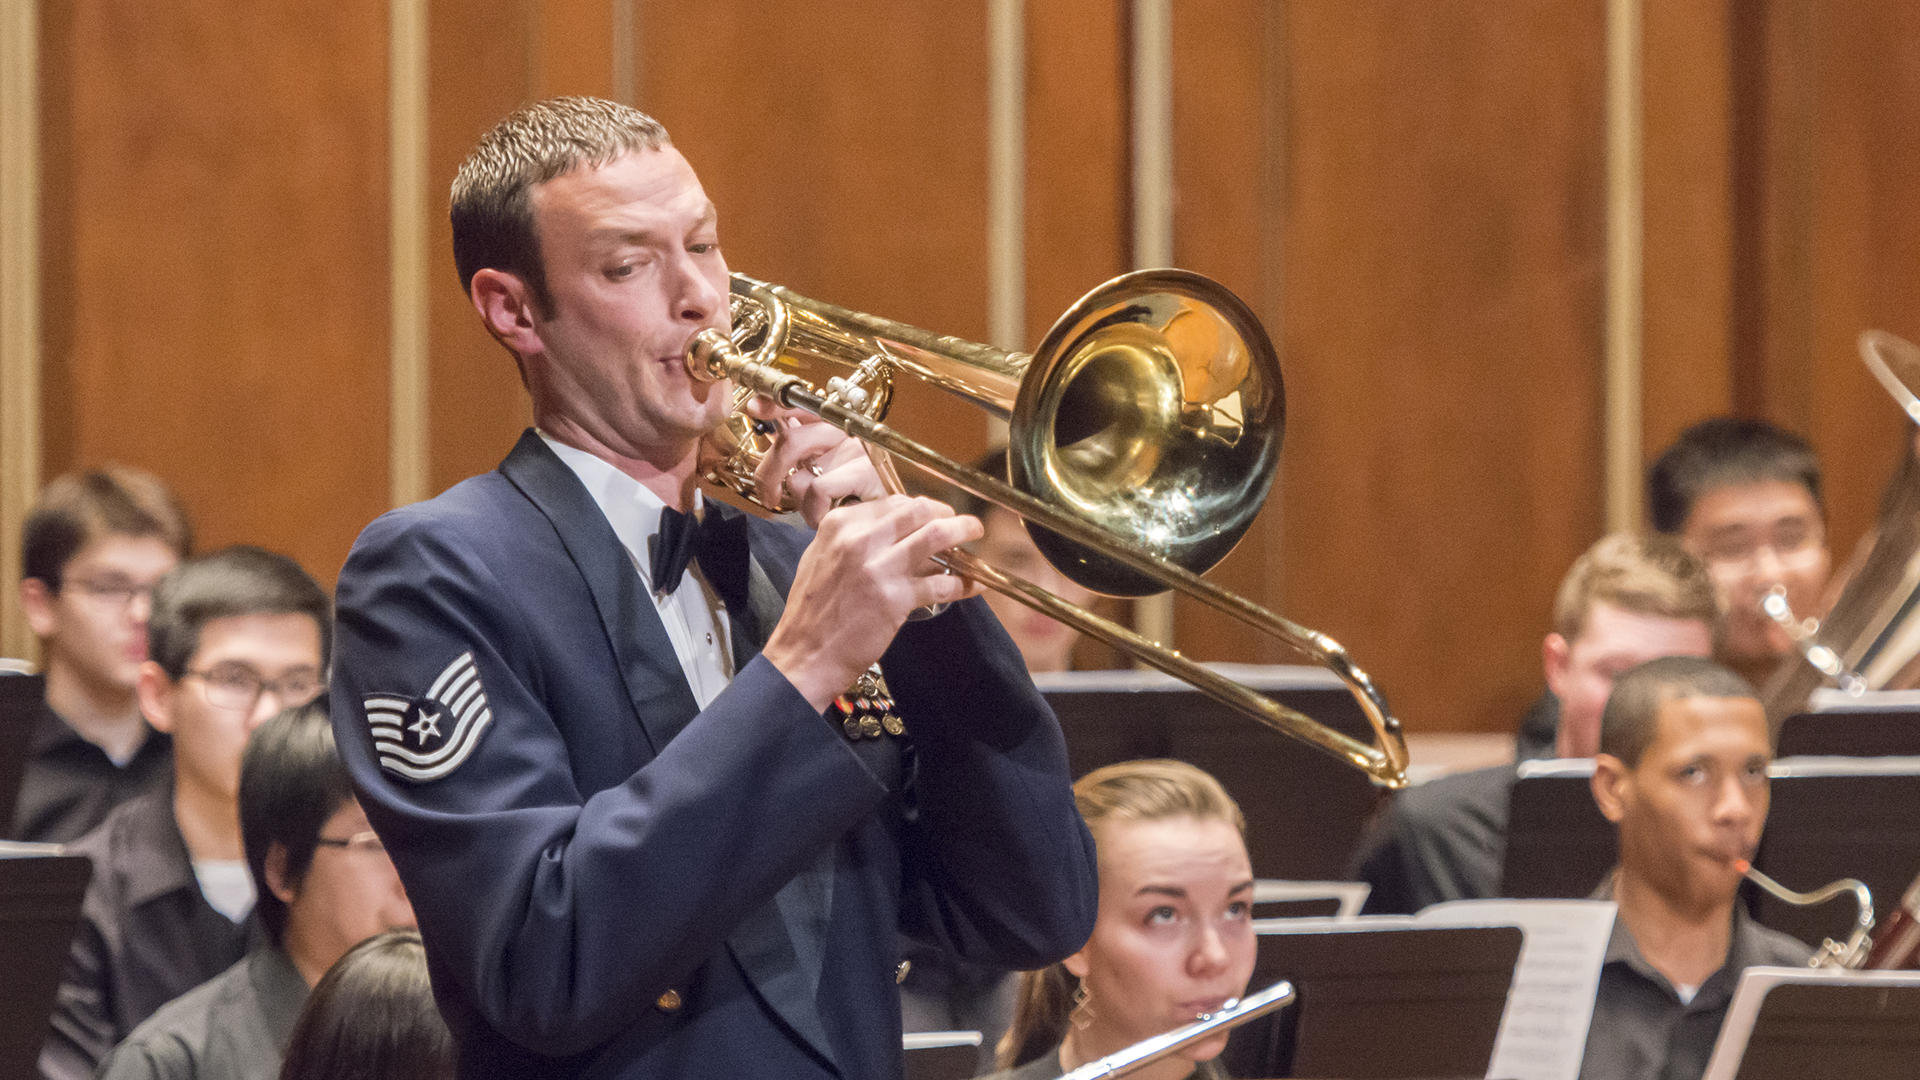 Symphonic Winds perform with guest artist